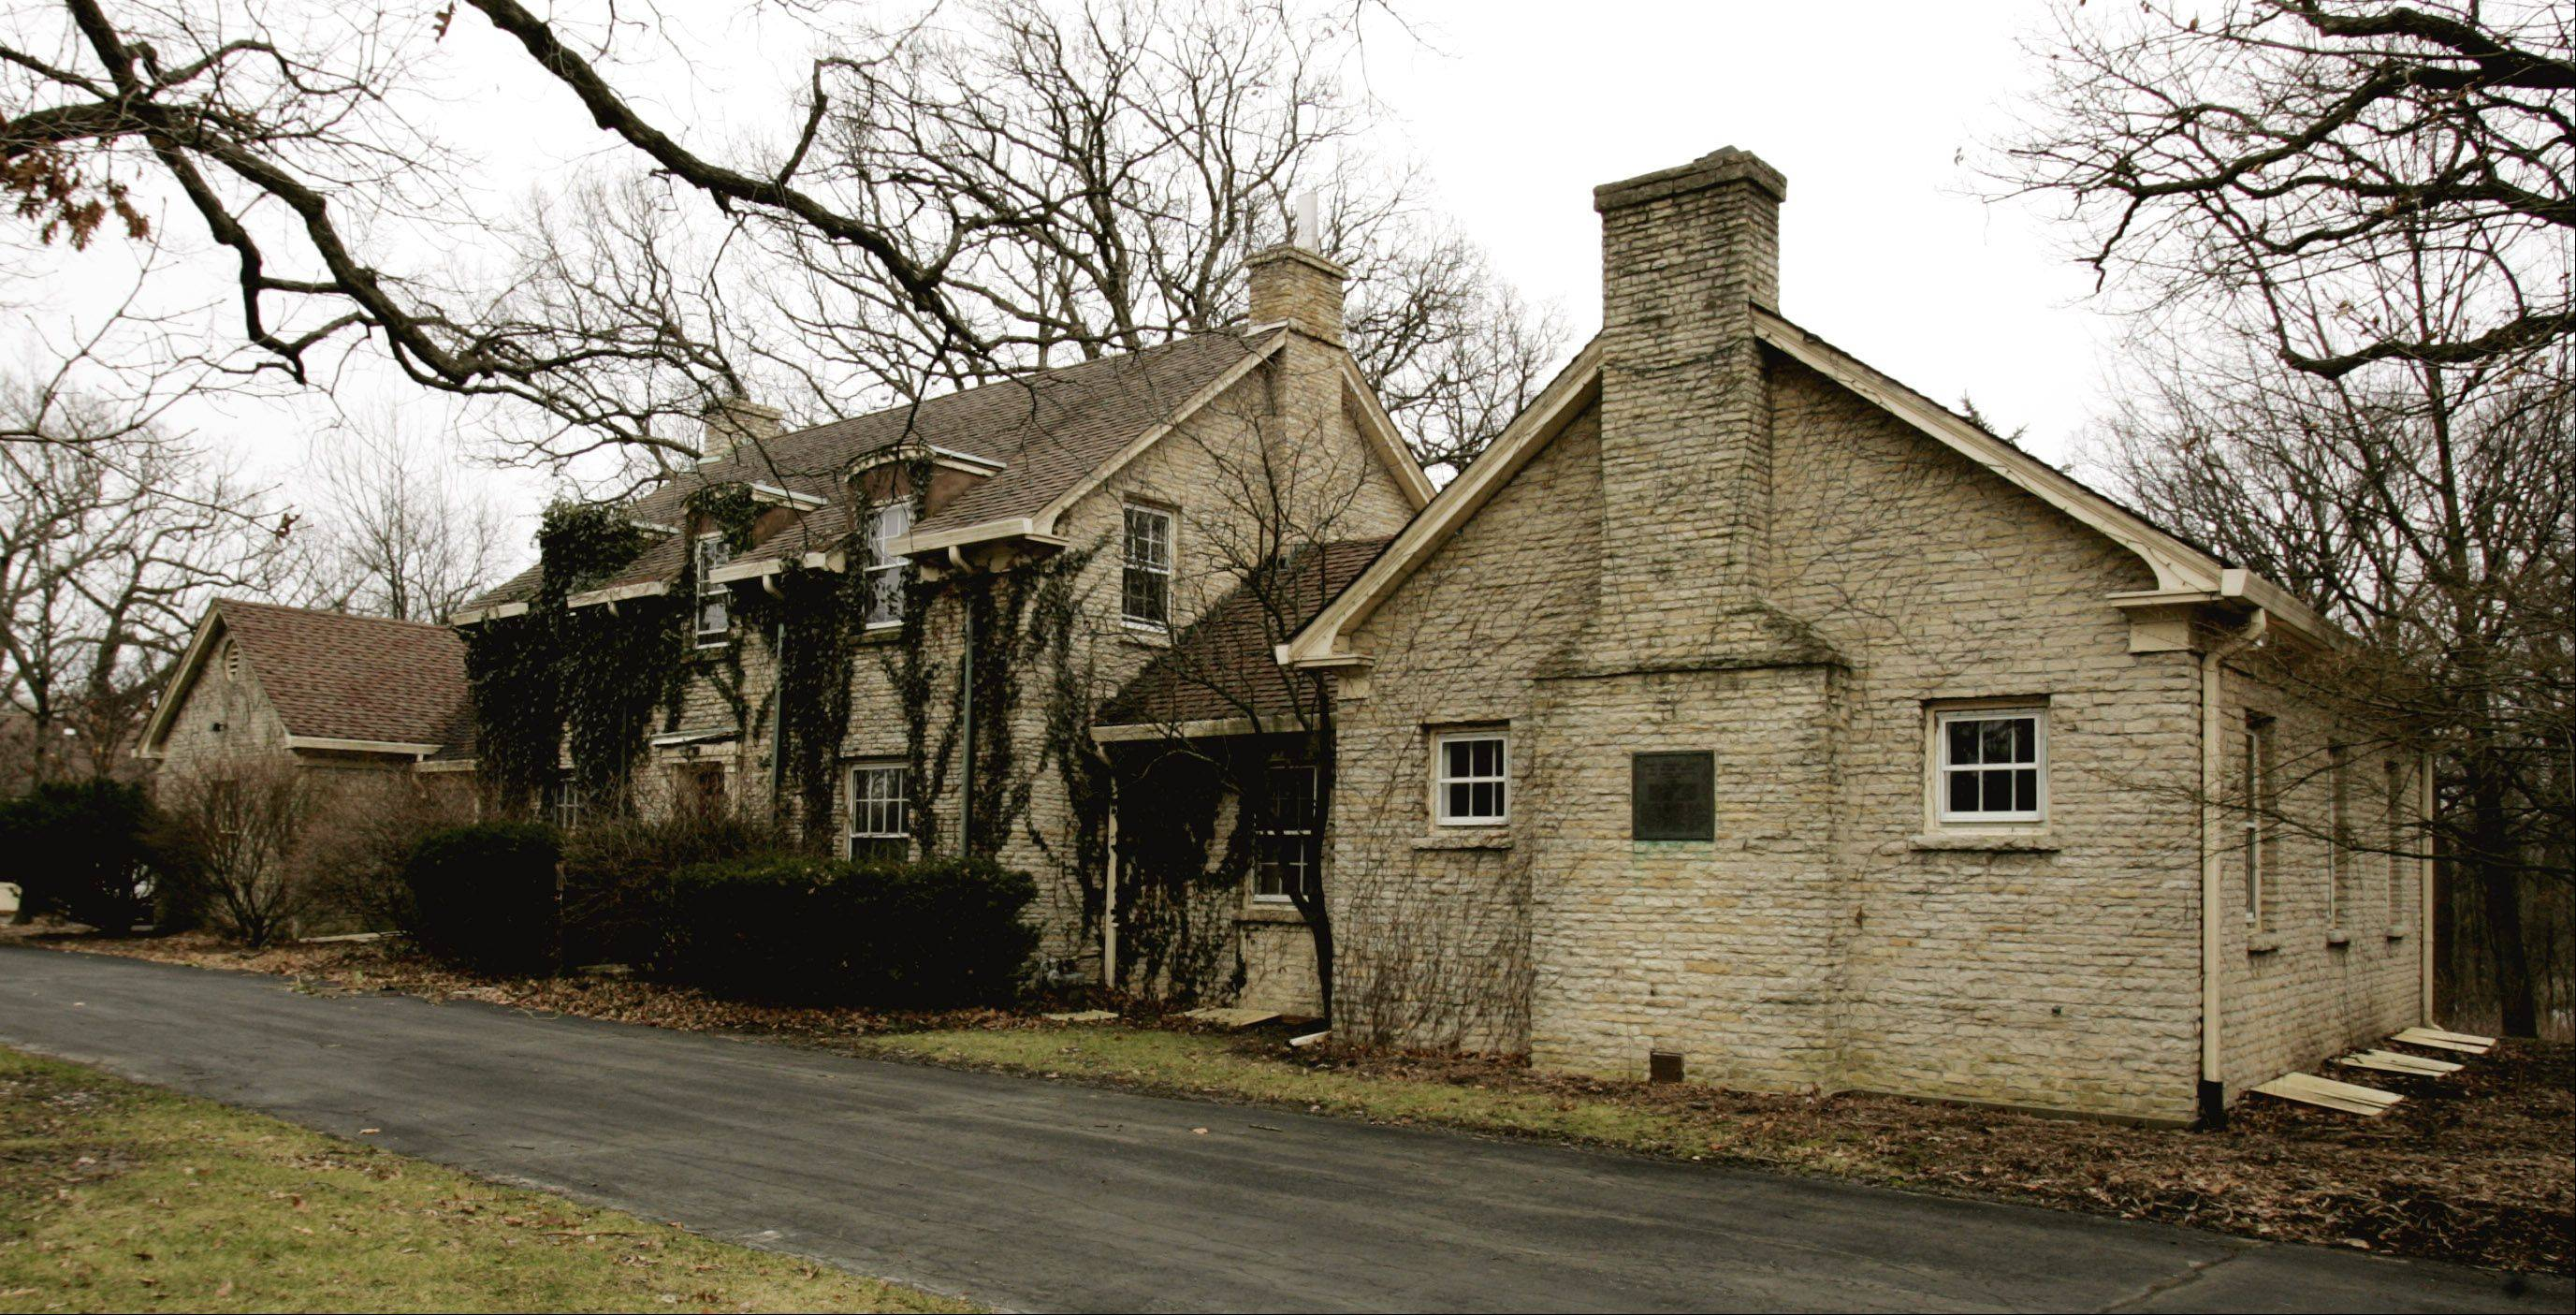 The fate of the historic McKee House near Glen Ellyn won't be decided until after an architectural firm calculates how much it would cost to restore the building.